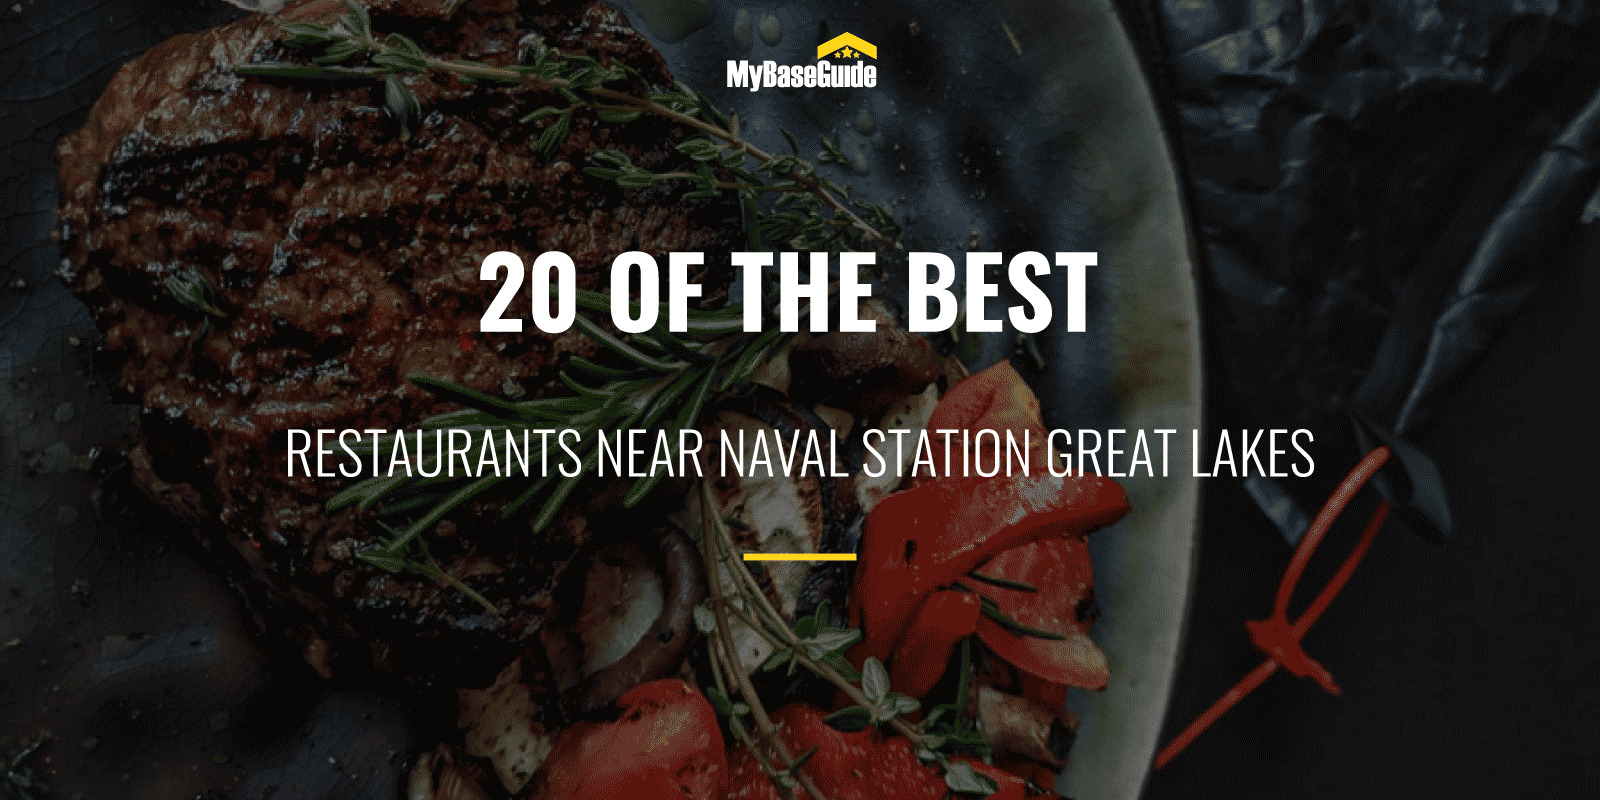 20 of the Best Restaurants Near Naval Station Great Lakes